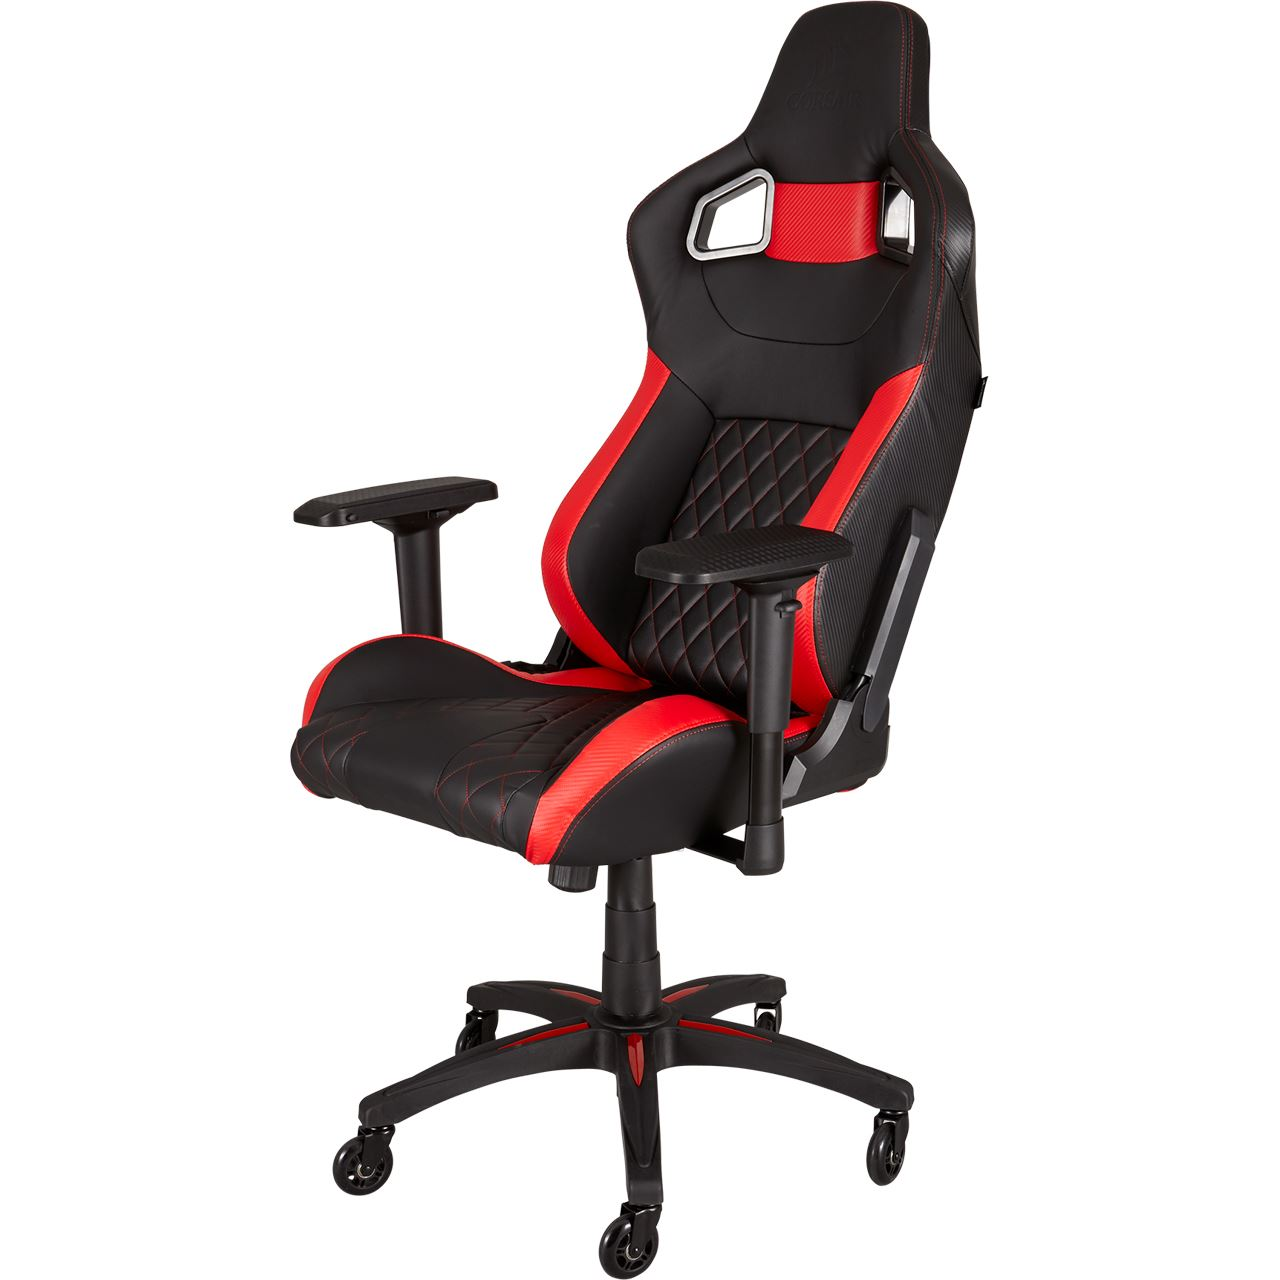 Gamer Sessel Schweiz Ps4 Gaming Sessel